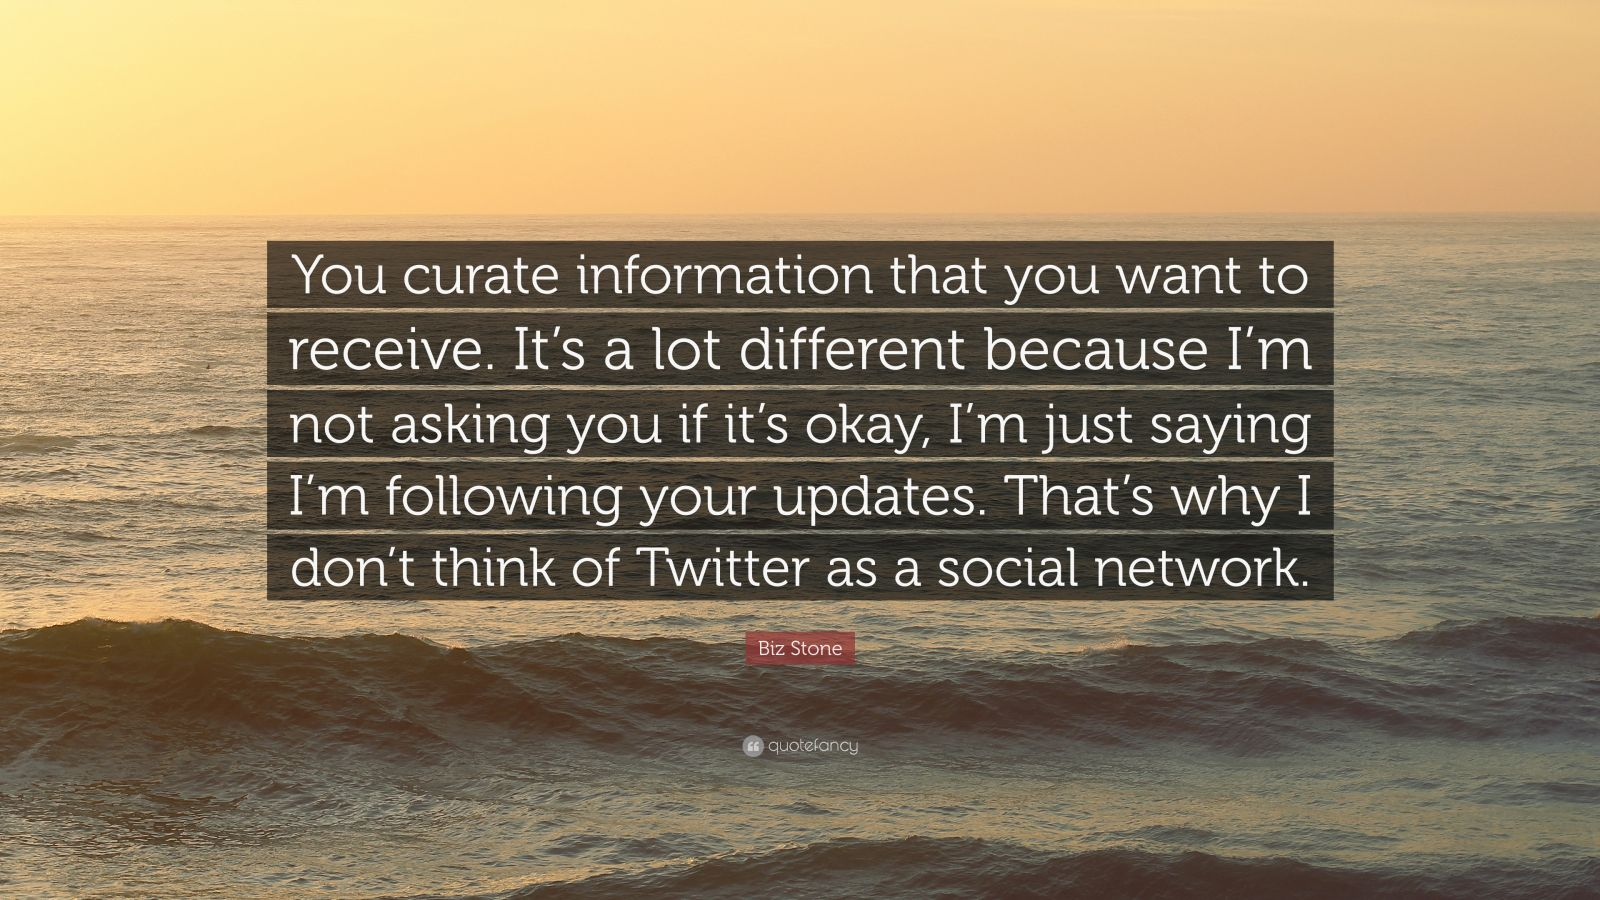 "Biz Stone Quote: ""You curate information that you want to receive. It's a lot different because I'm not asking you if it's okay, I'm just saying I'm following your updates. That's why I don't think of Twitter as a social network."""